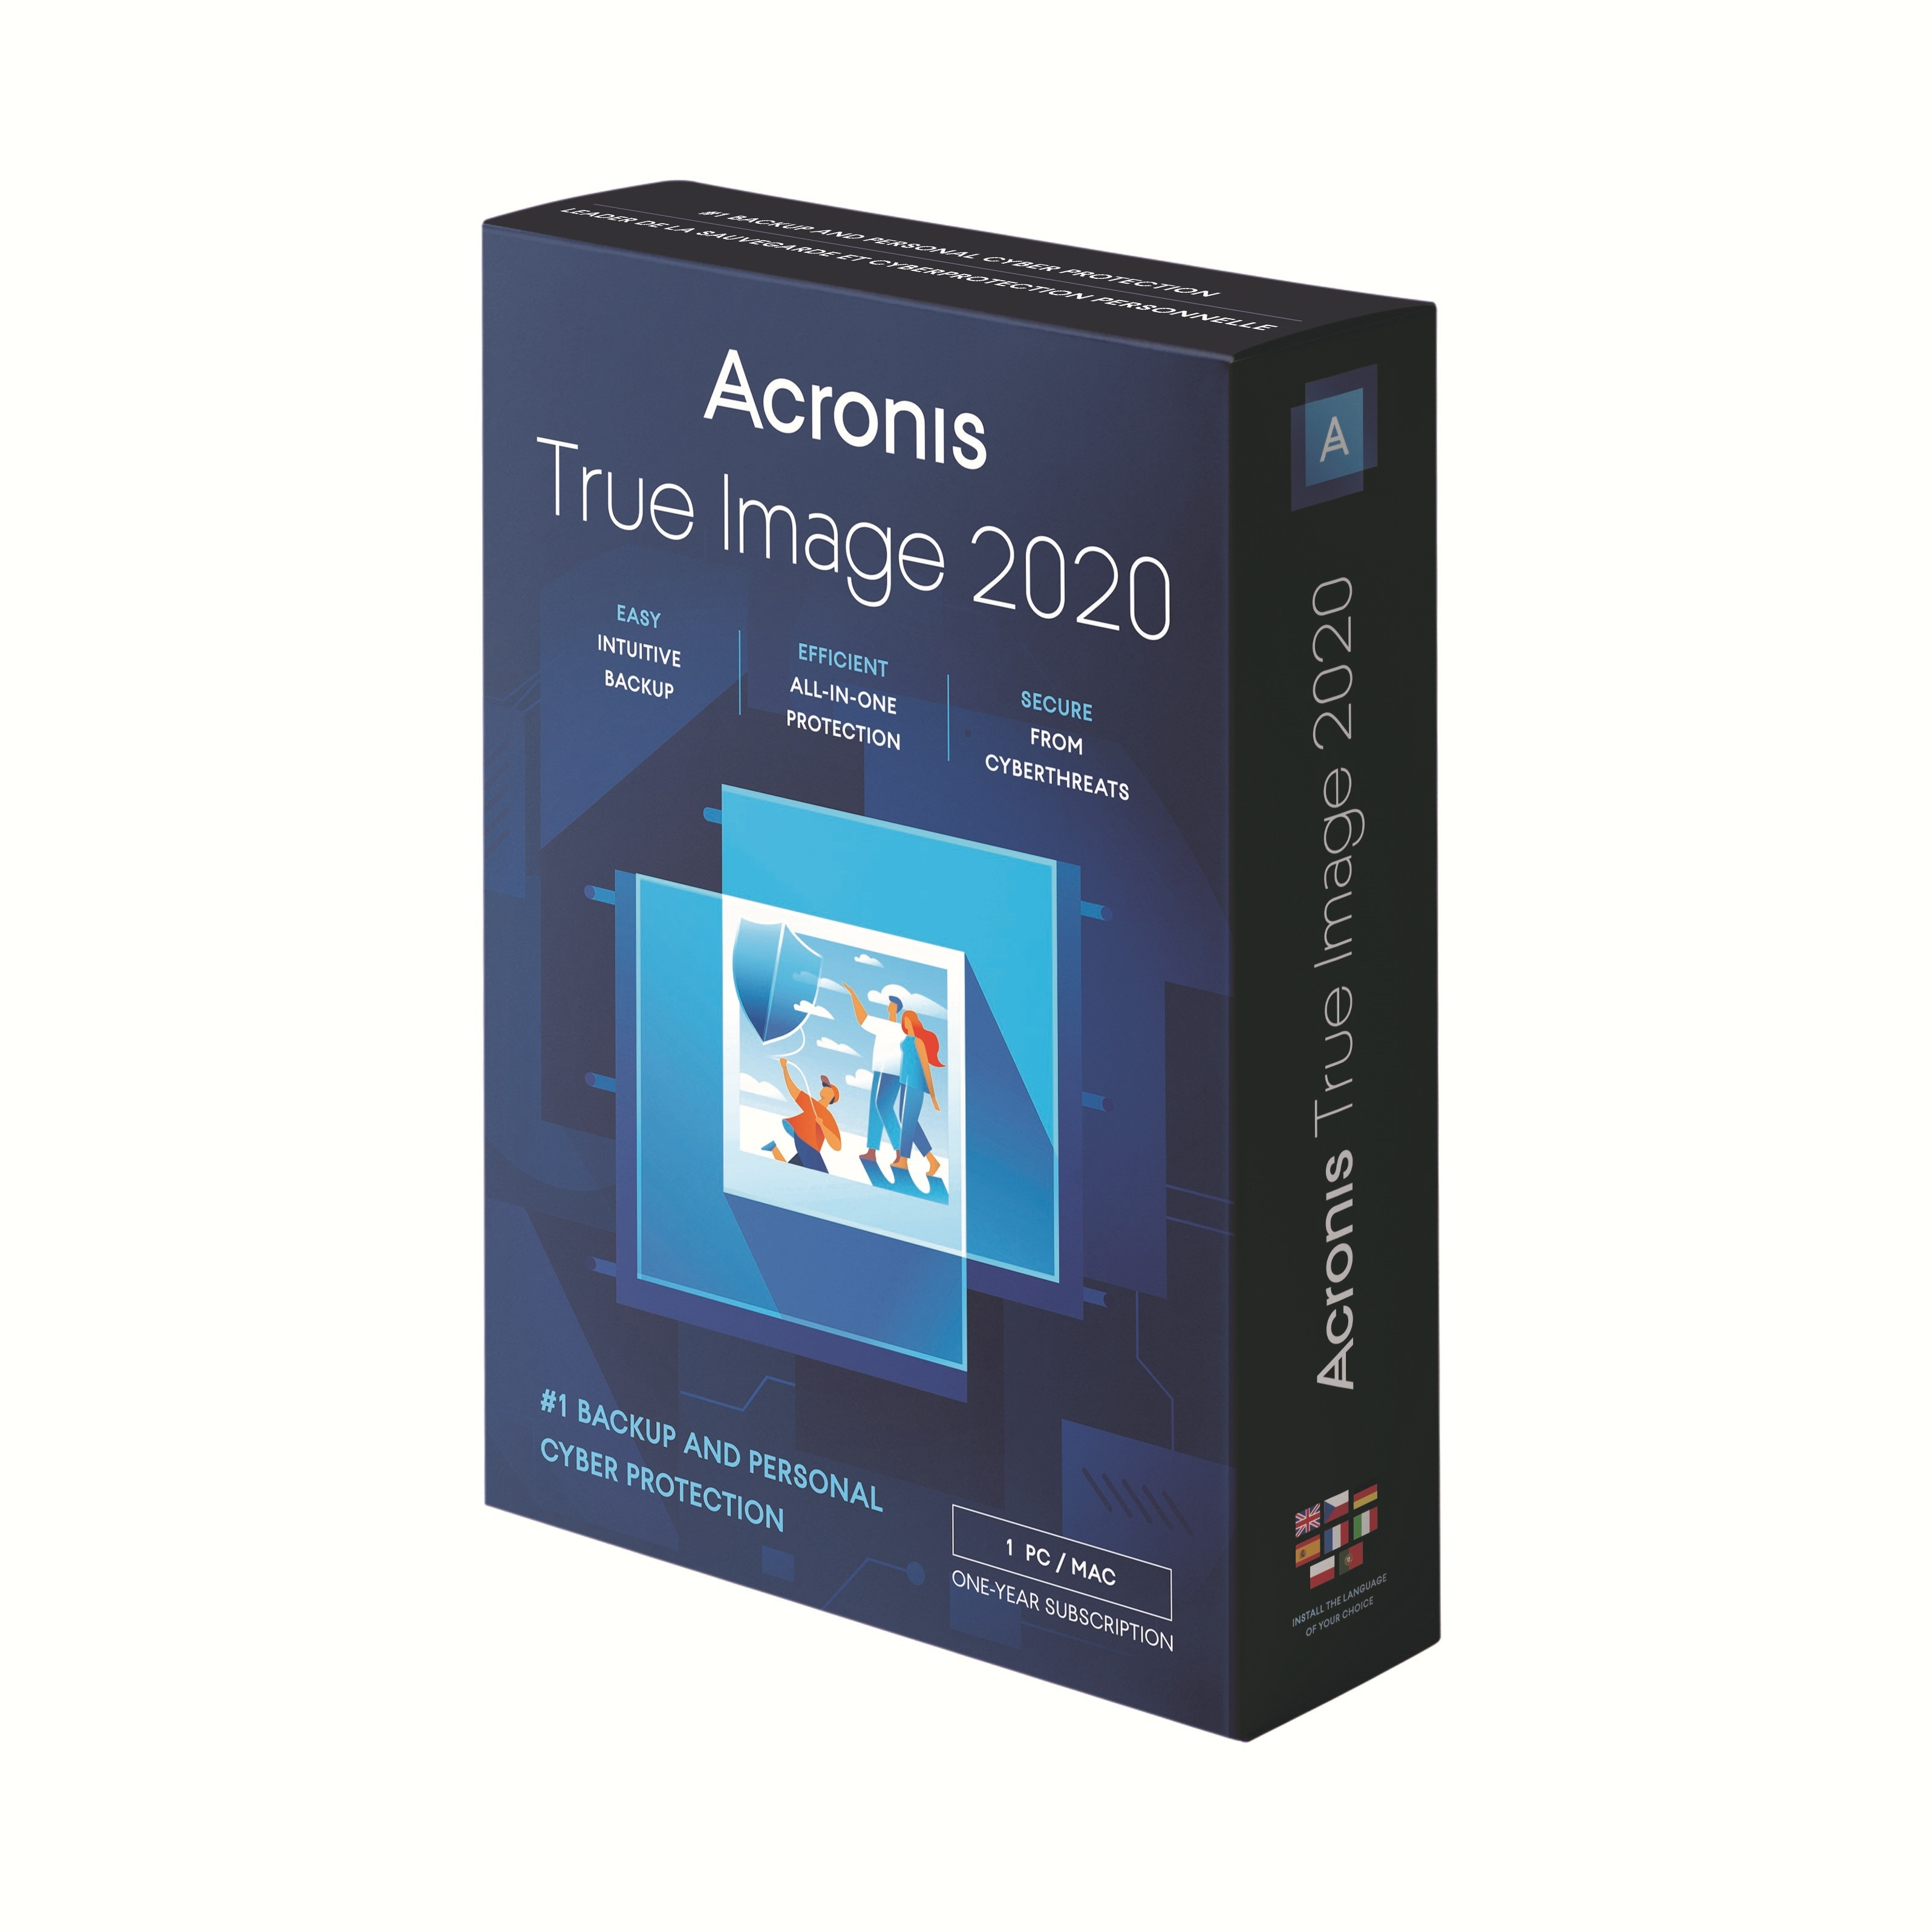 Acronis True Image 2020 1 Jahr 1 Computer 250 GB Cloud Speicher Box Win Mac Android iOS, Deutsch